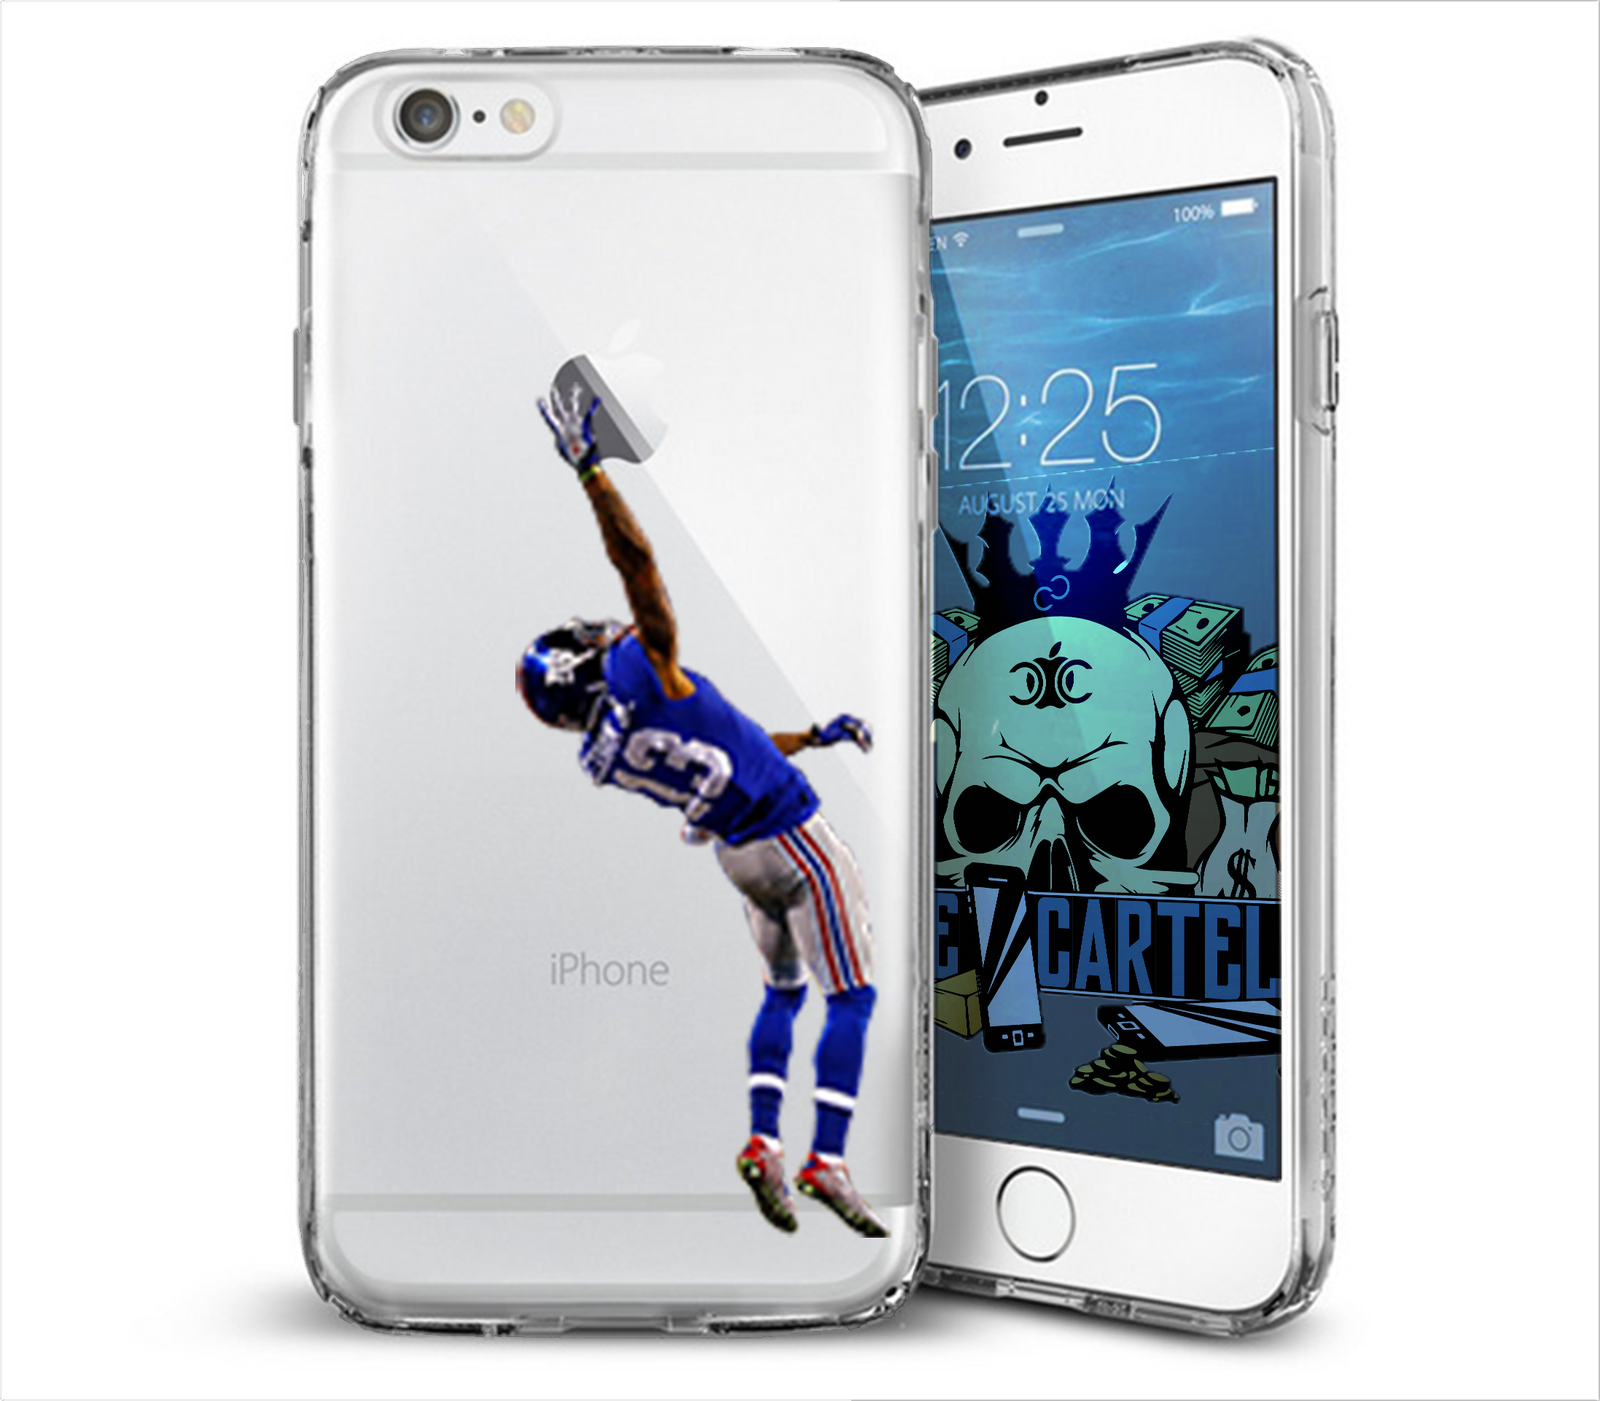 wholesale dealer 125e2 0b0f3 Odell Beckham Jr iPhone 6 Plus Phone Case and similar items